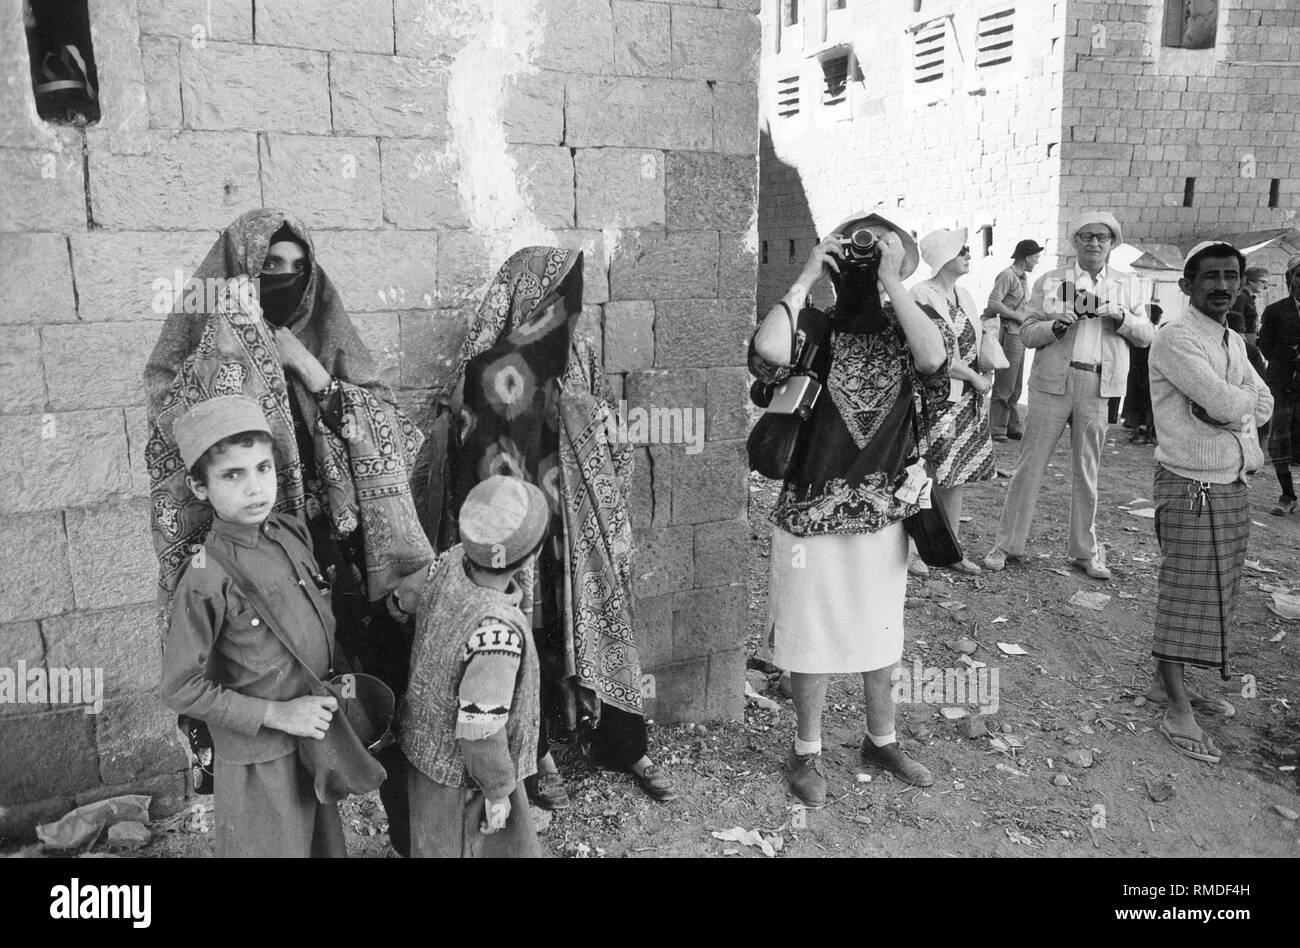 Unrestrained photographing tourists beside veiled women in northern Yemen. - Stock Image